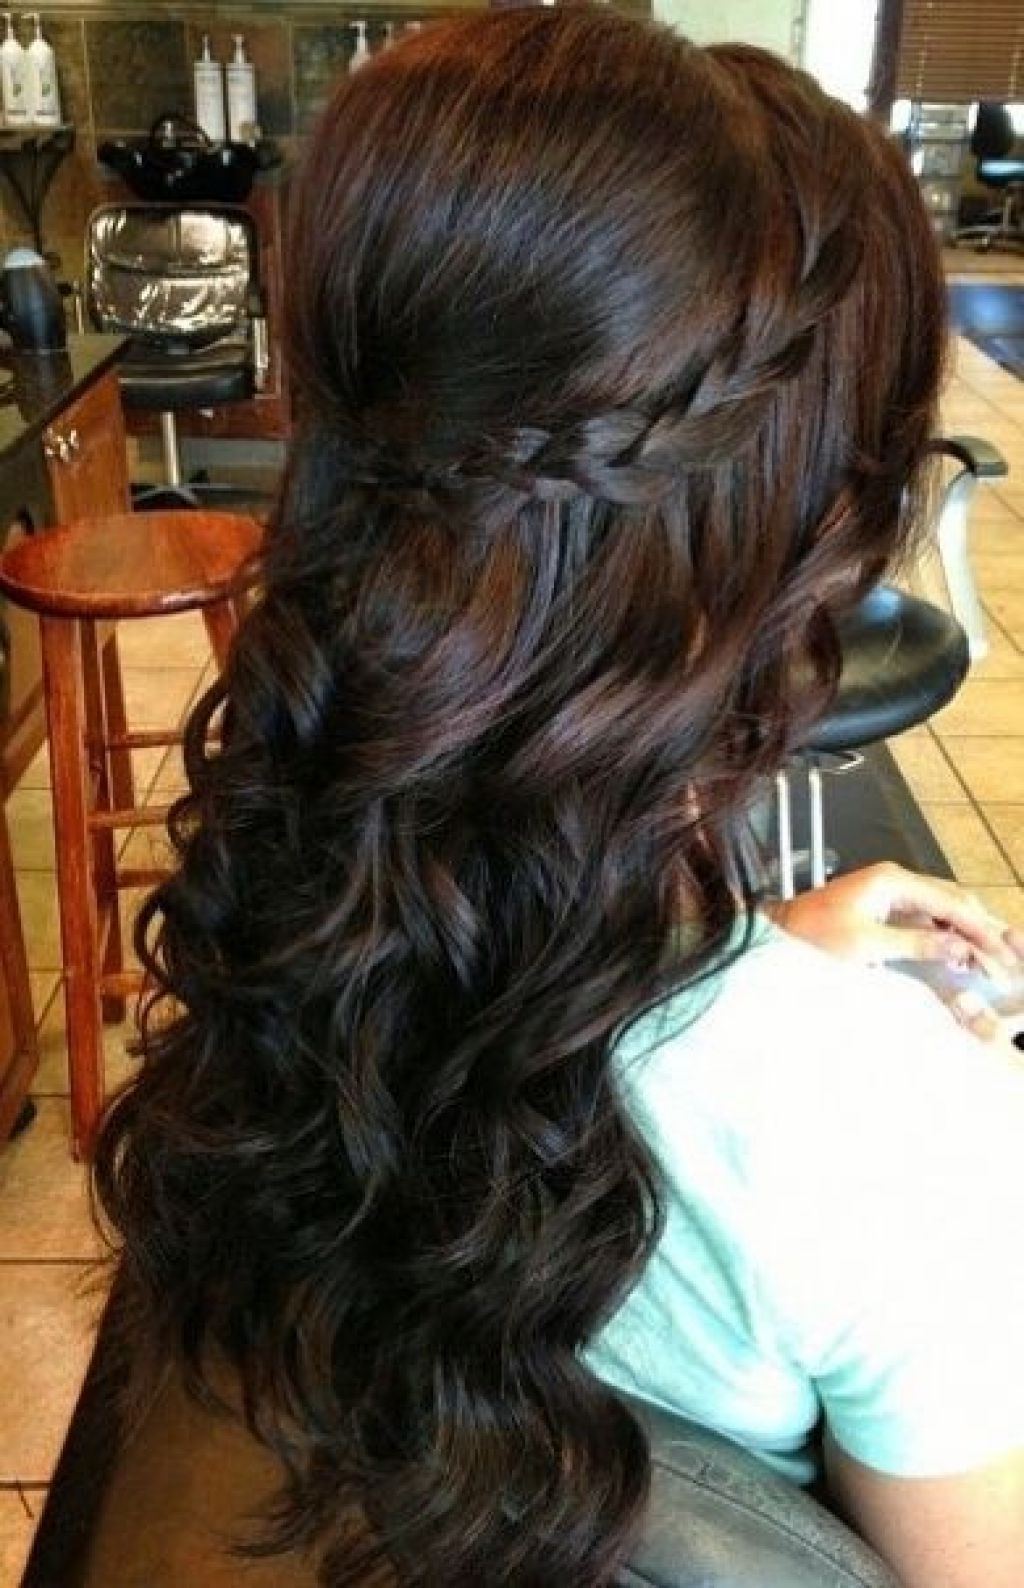 Loose Curls For Medium Length Hairstyles – Hairstyle For Women & Man With Regard To Loose Updos For Curly Hair (View 7 of 15)